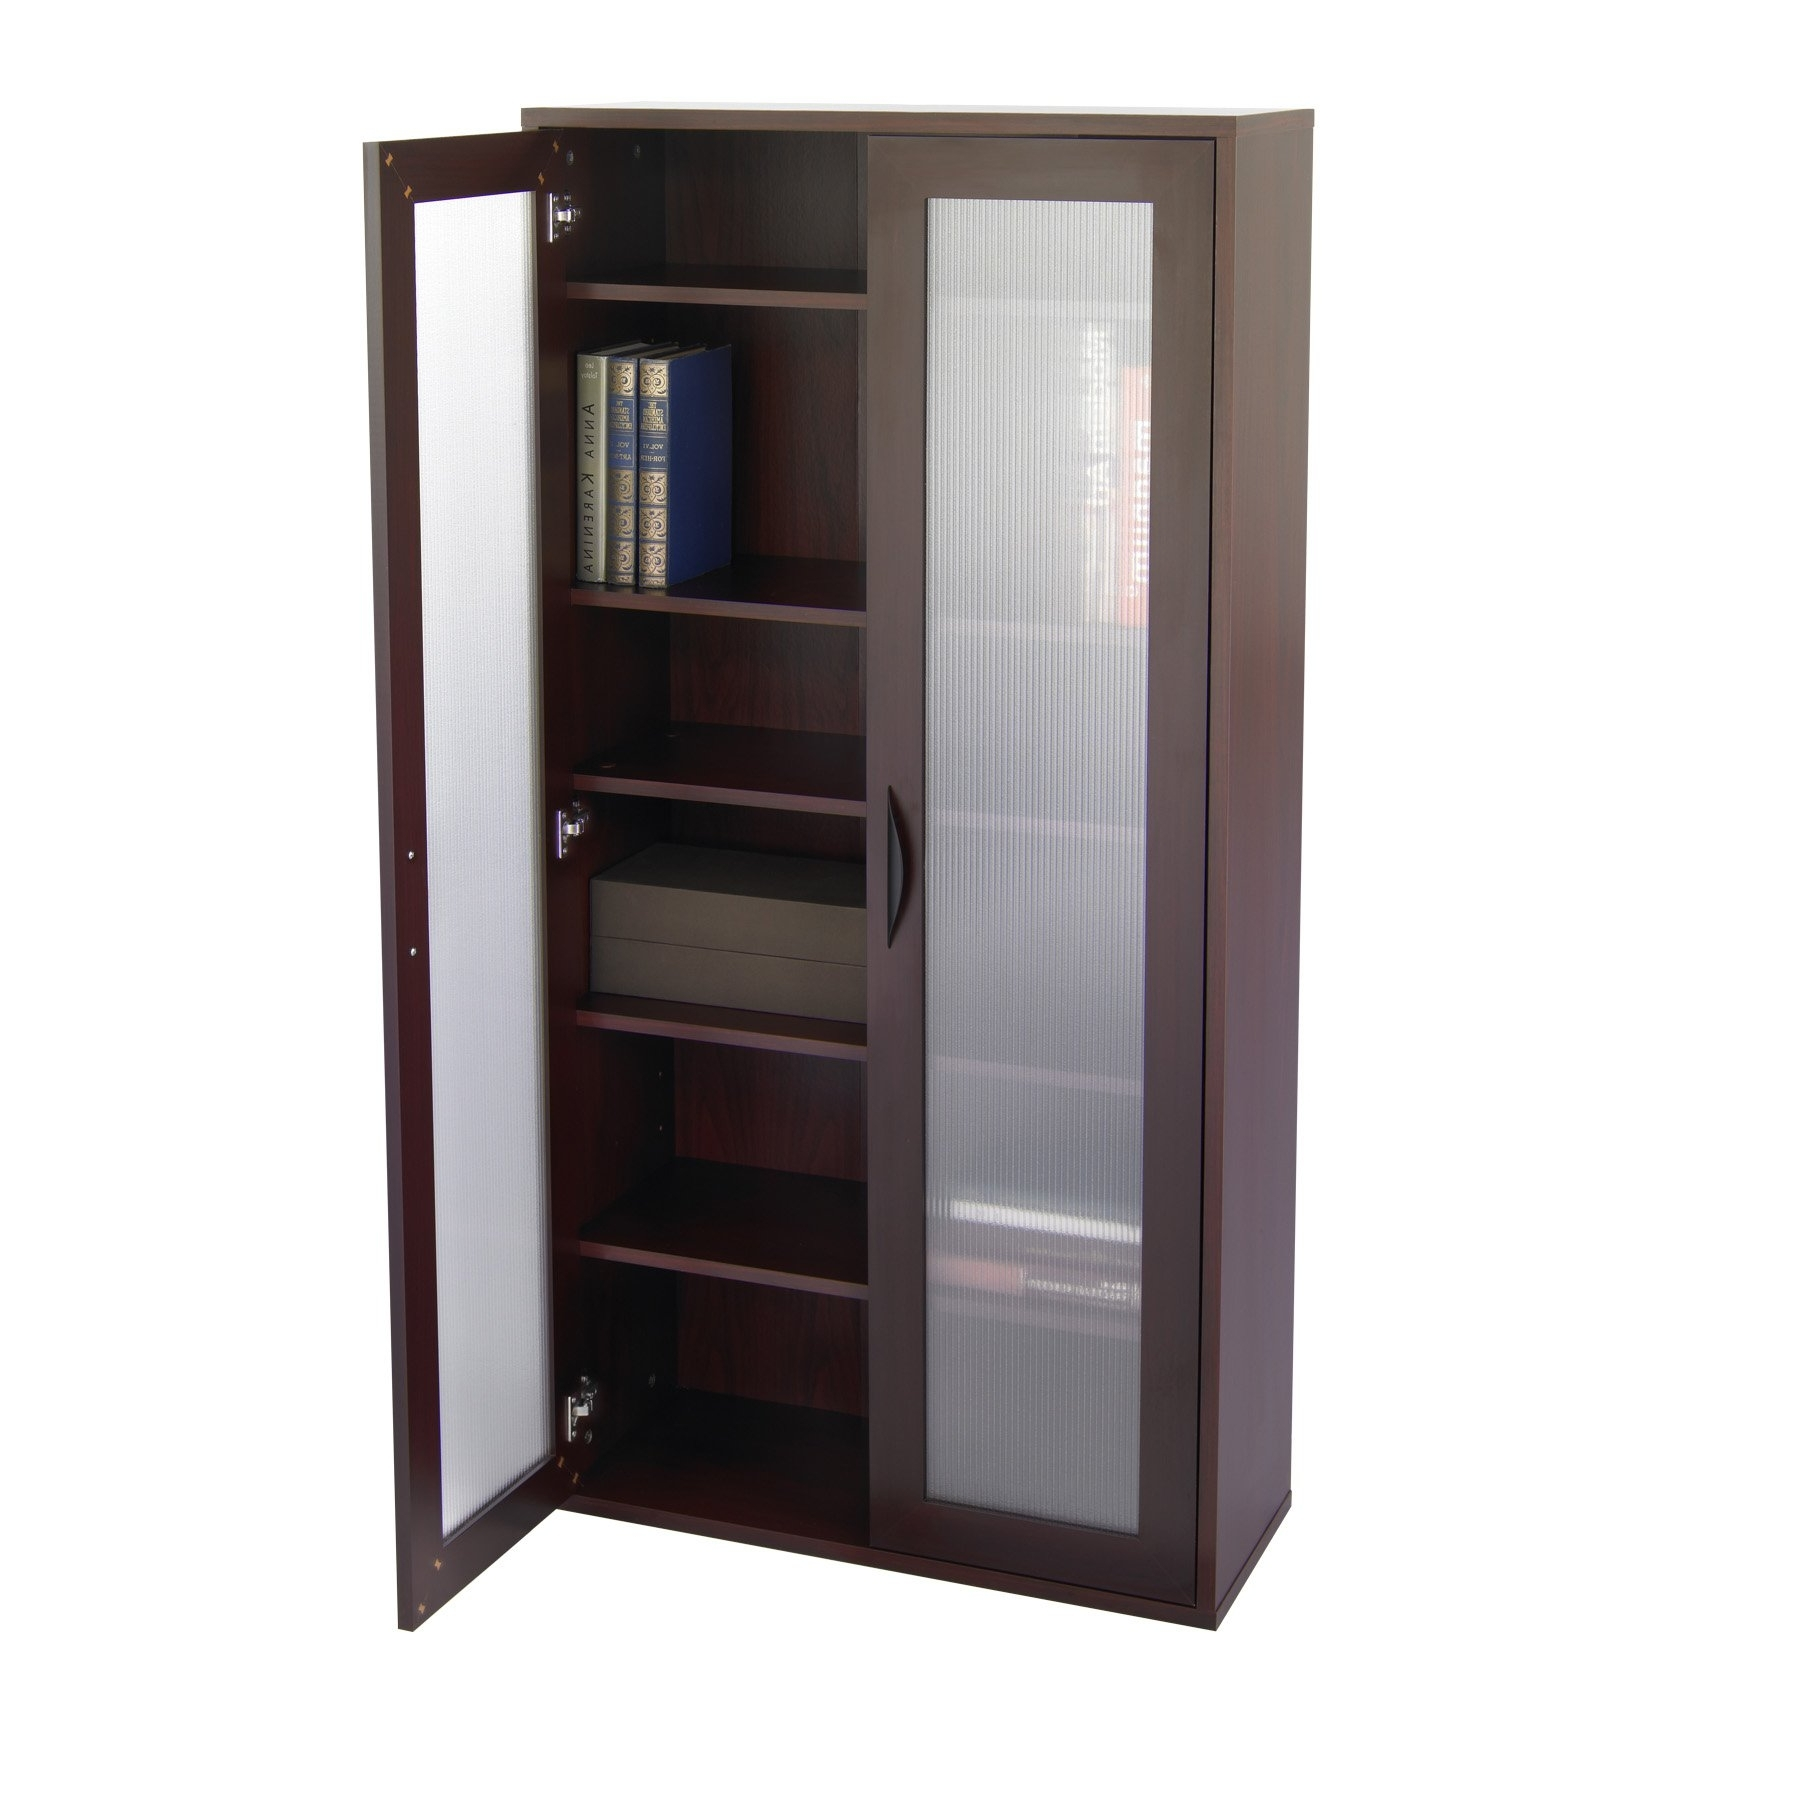 Famous White Bookcases With Glass Doors Within Storage Bookcase With Glass Doors Tall – Mahogany (View 4 of 15)